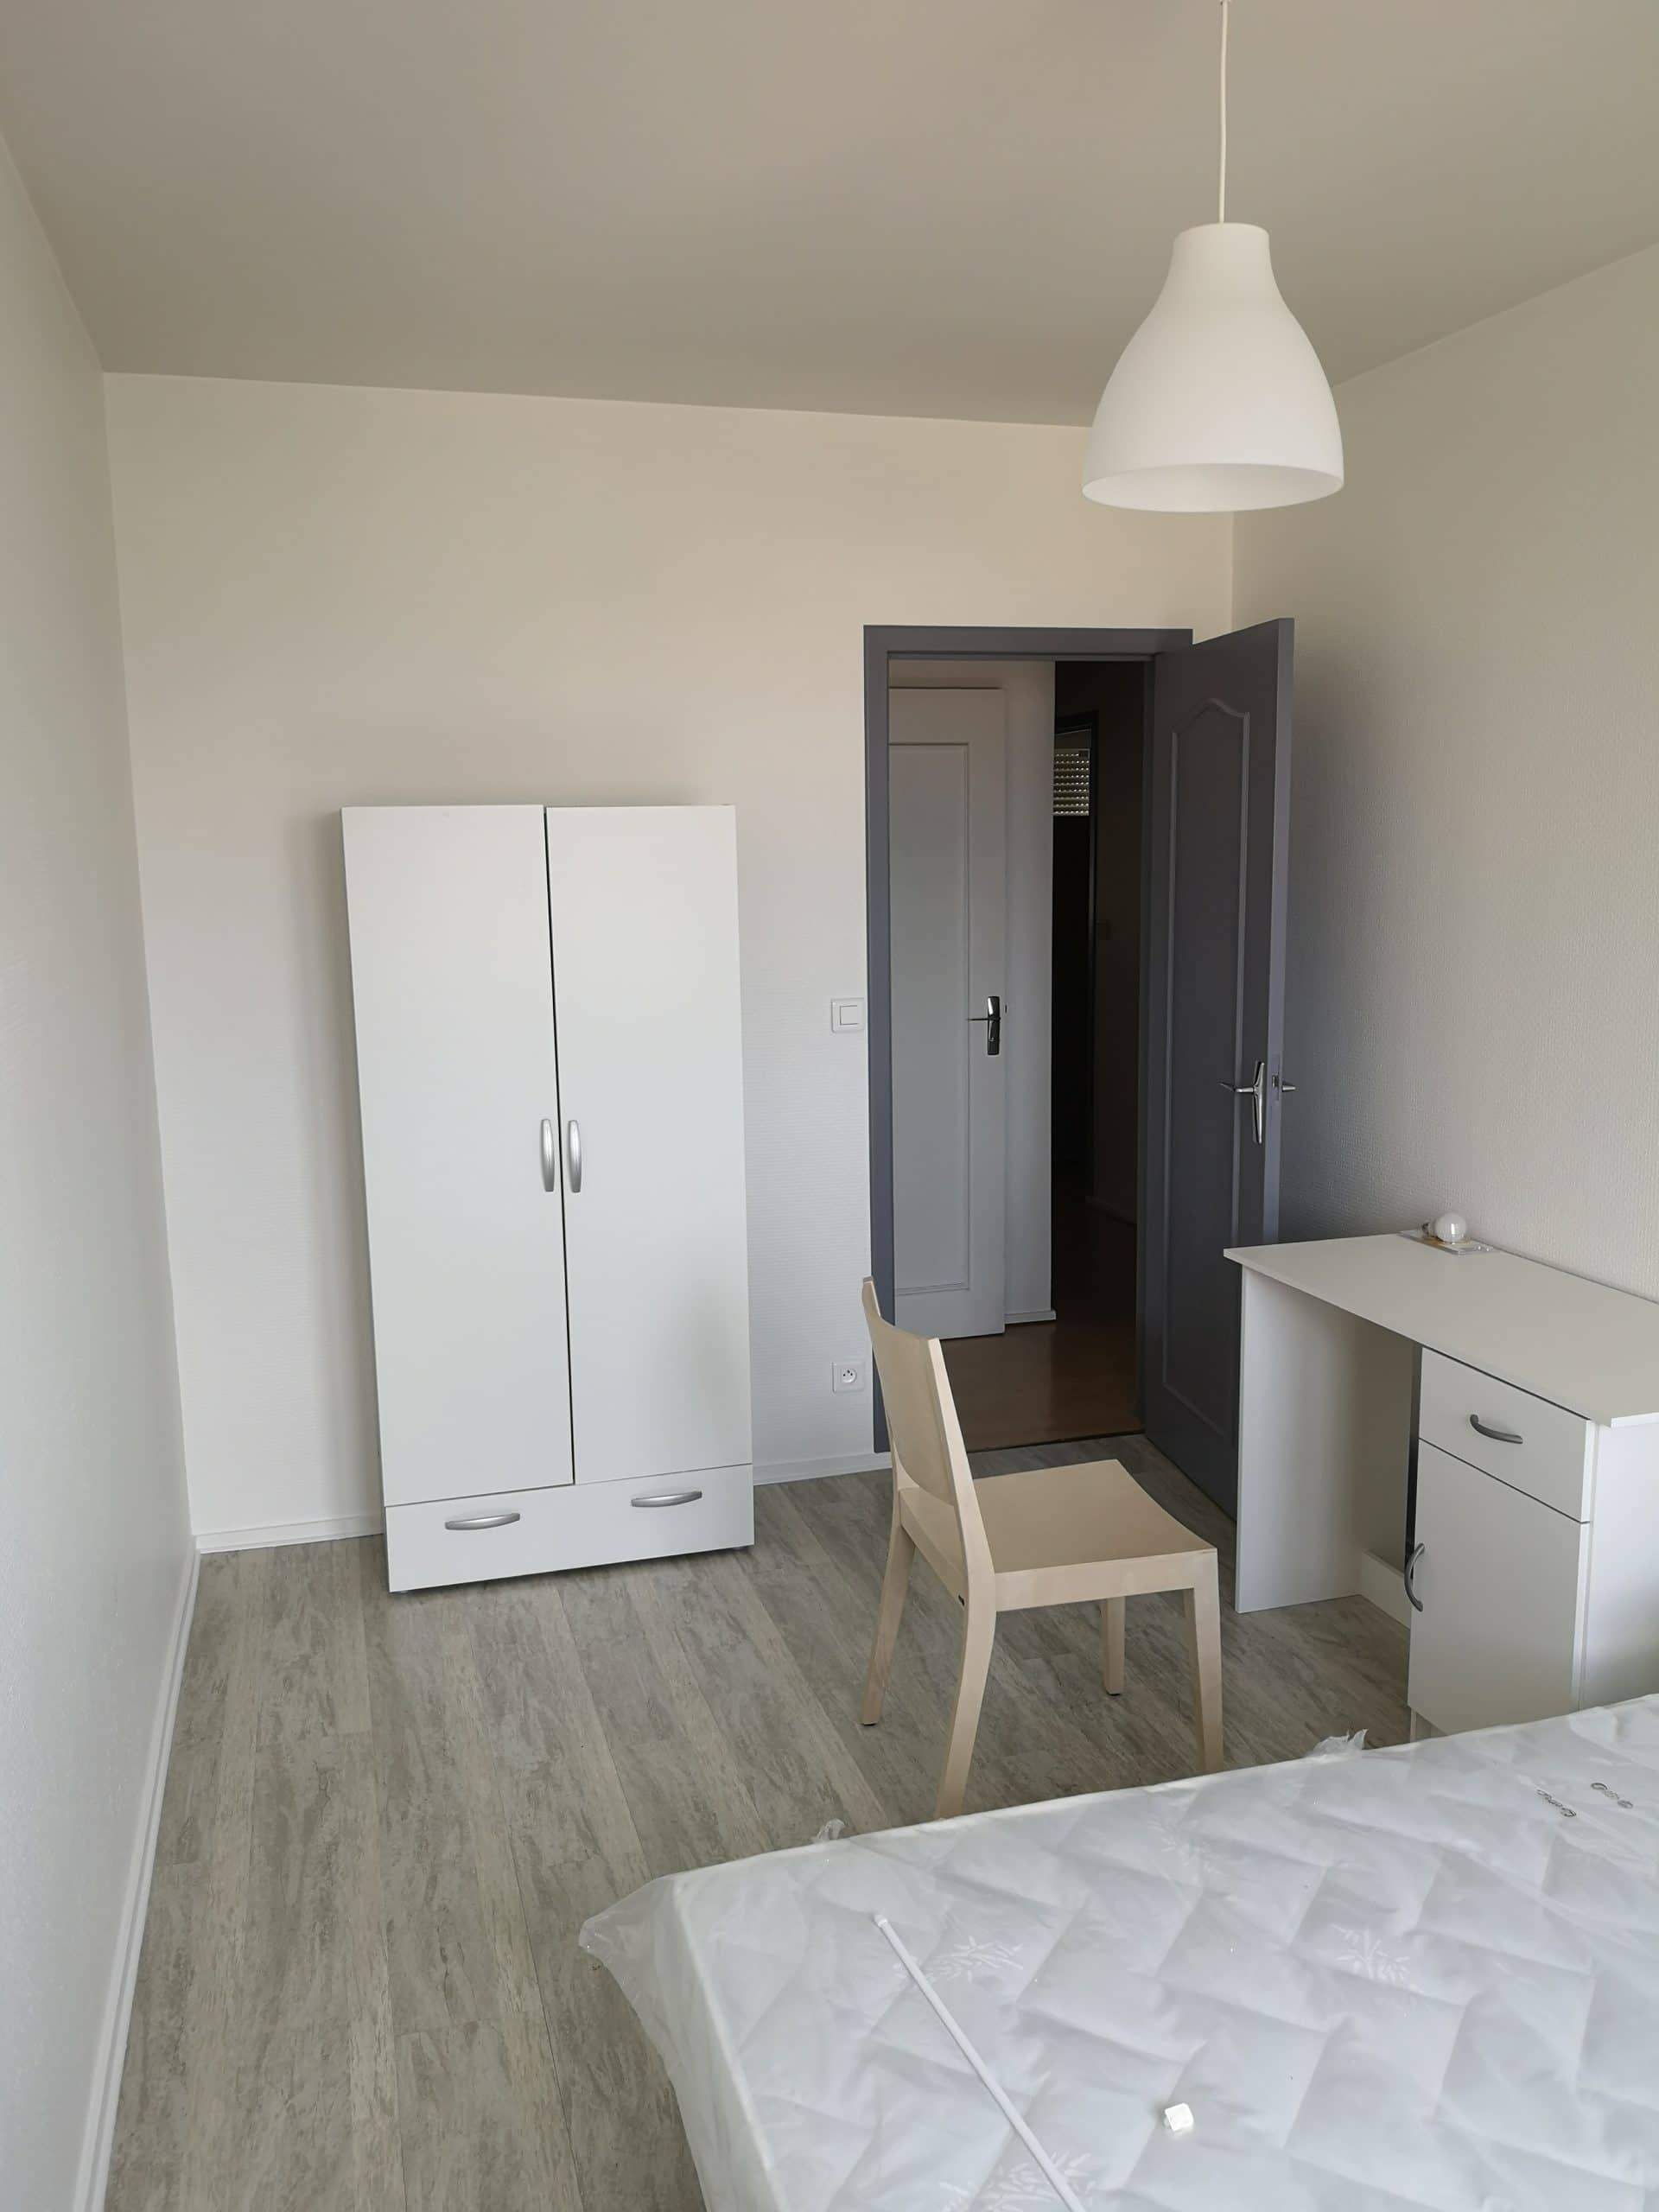 Rénovation d'un appartement destiné à la location à Beaumont (63)